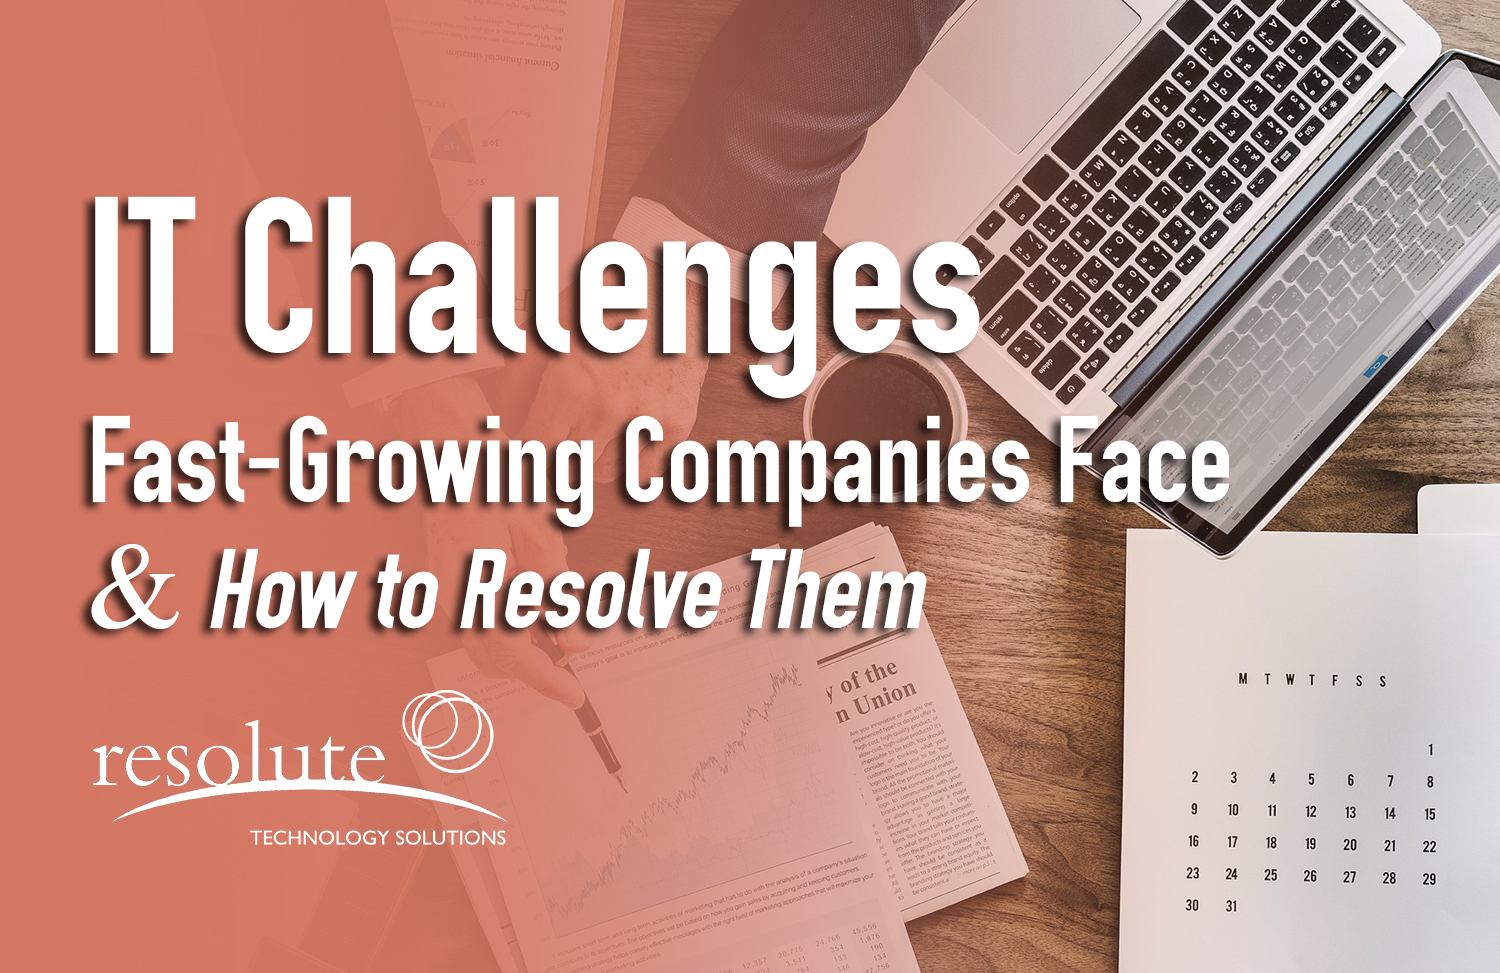 Common IT Challenges Fast-Growing Companies Face and How to Resolve Them